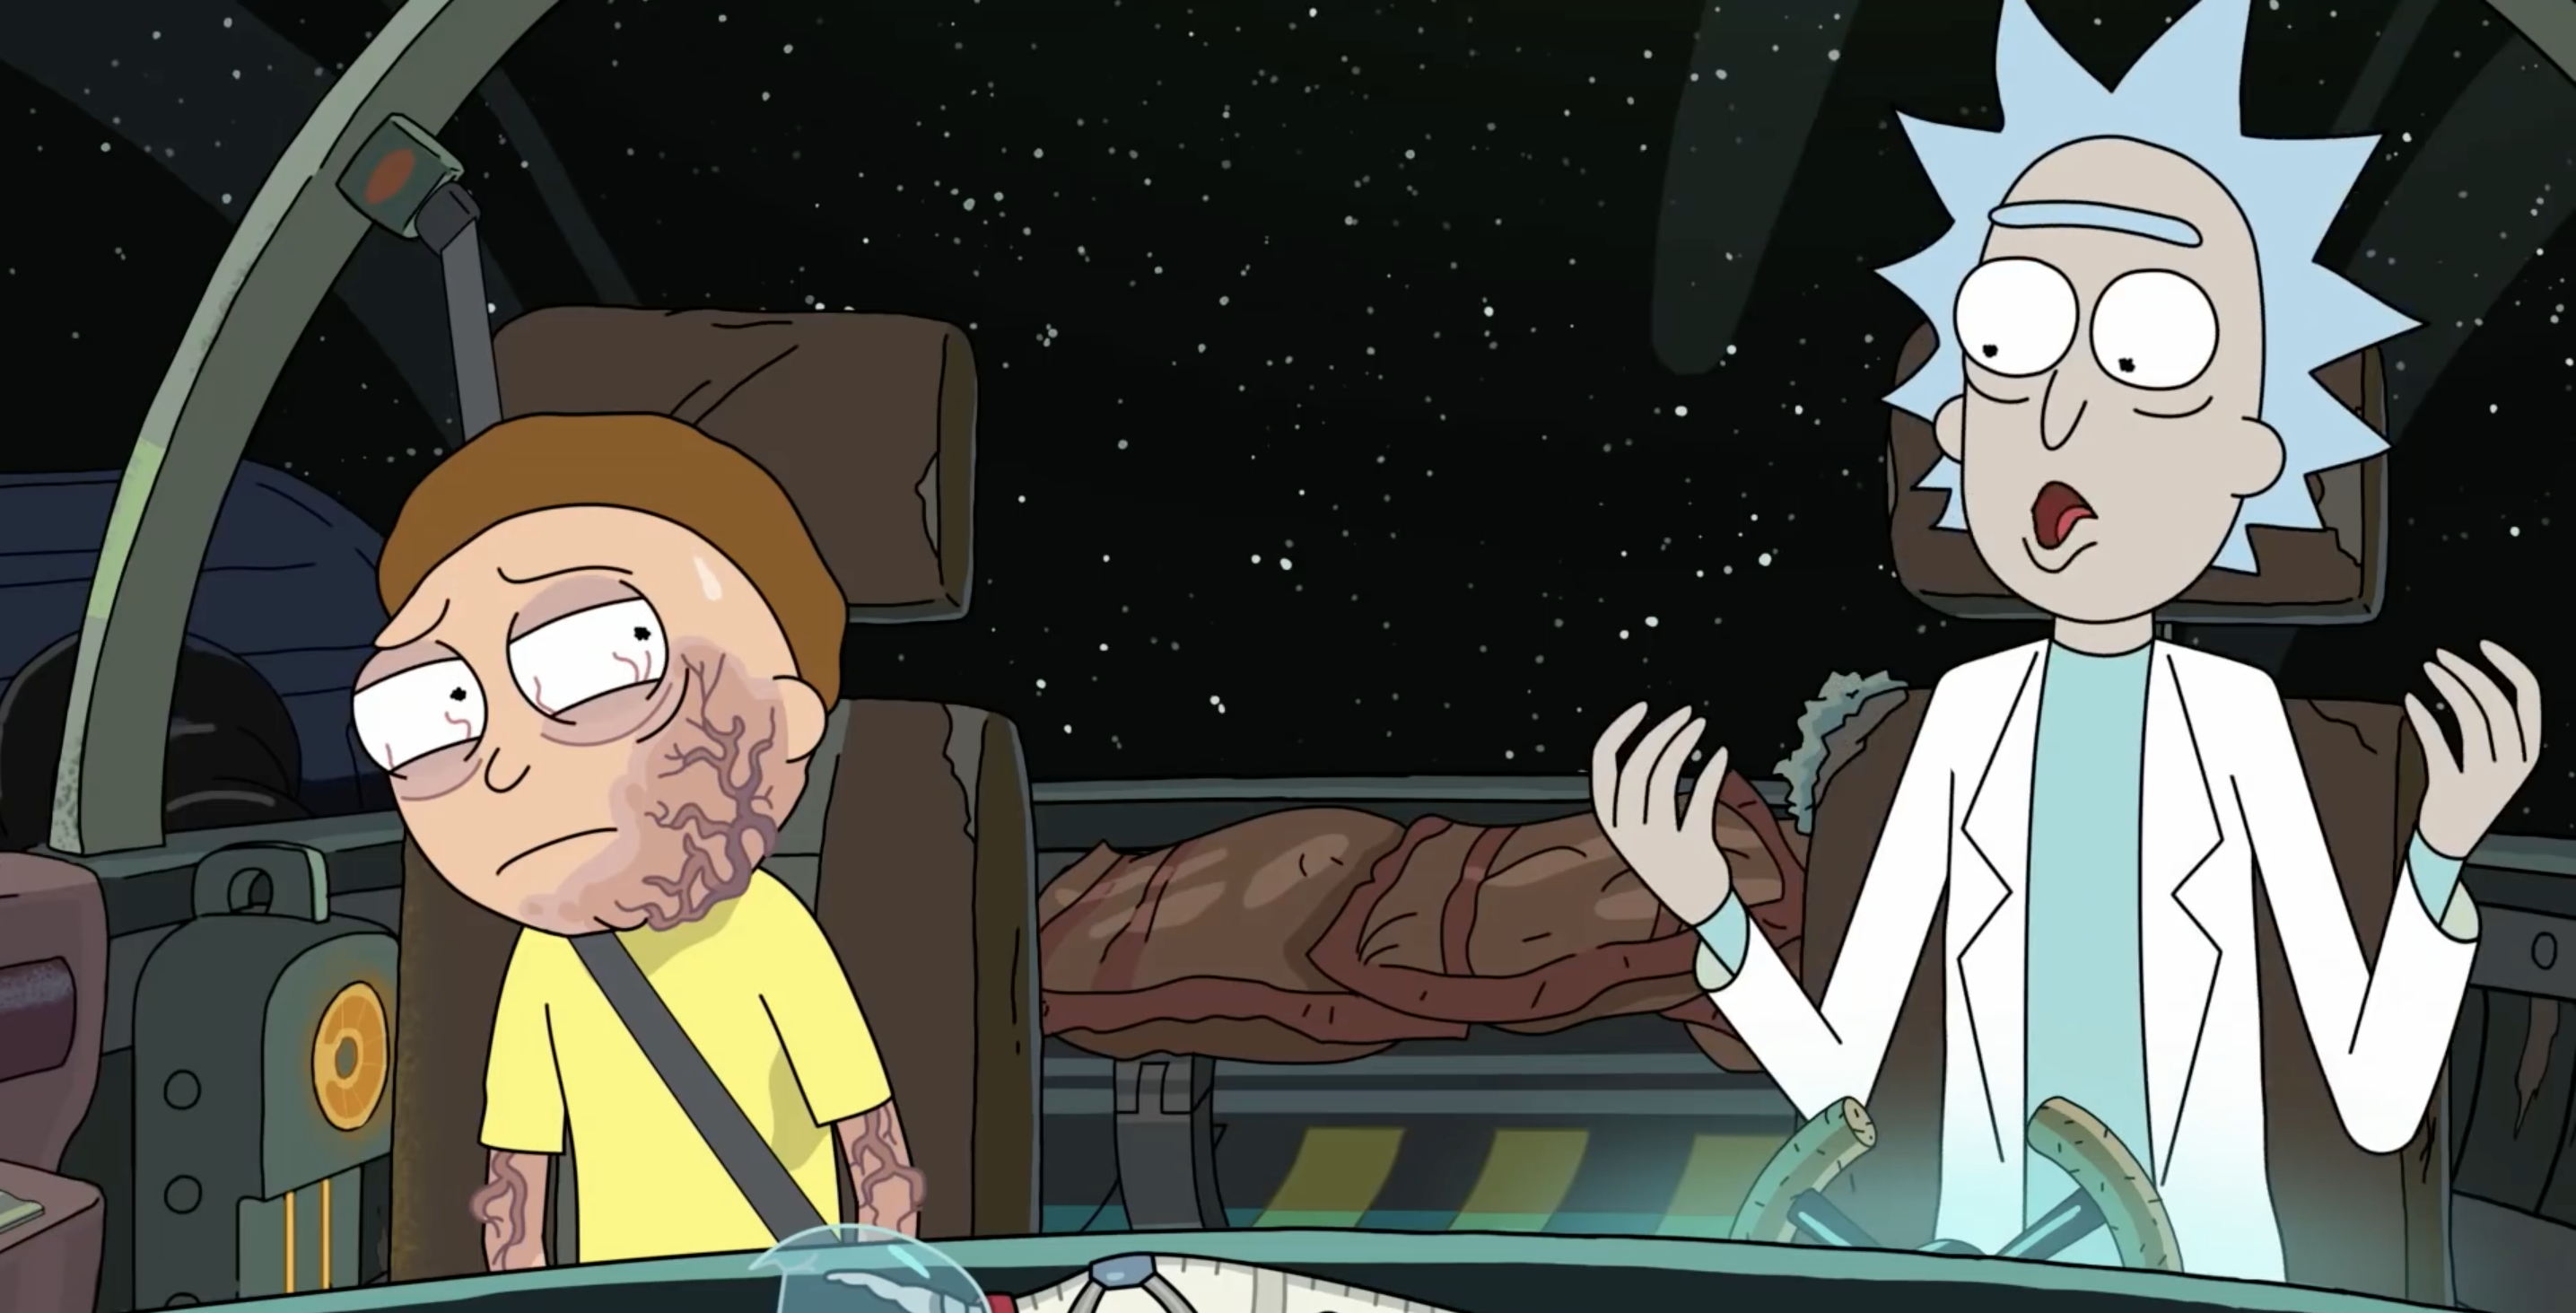 Rick and Morty season 4: watch the trailer!